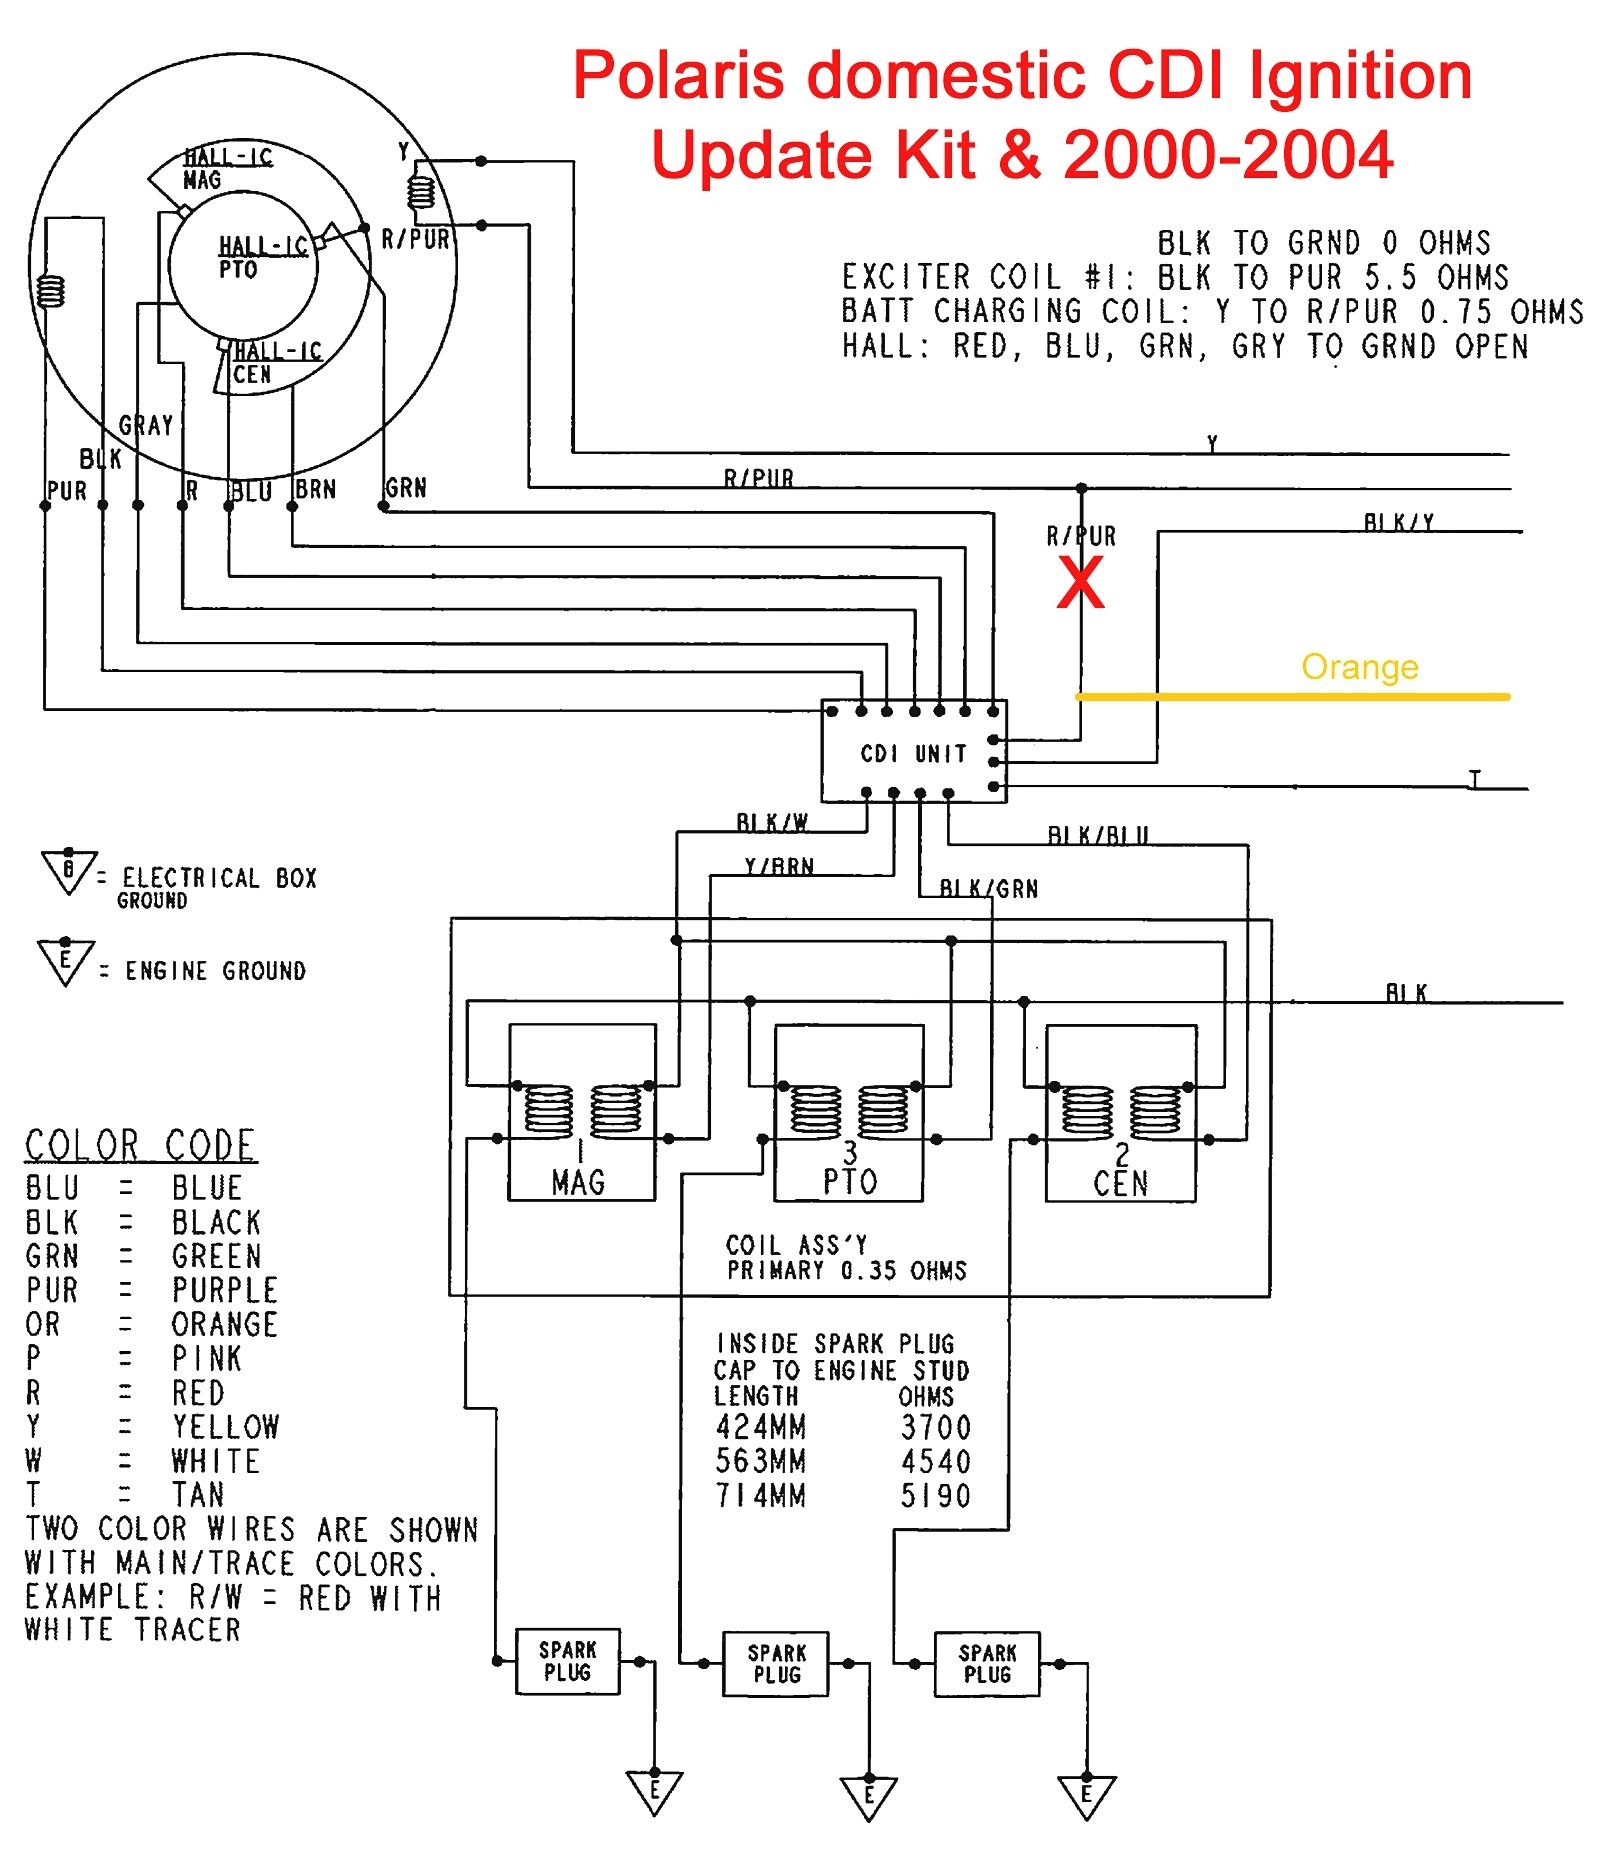 The Boss Snow Plow Wiring Diagram | Free Wiring Diagram Western Plow Wiring Diagram Boss on